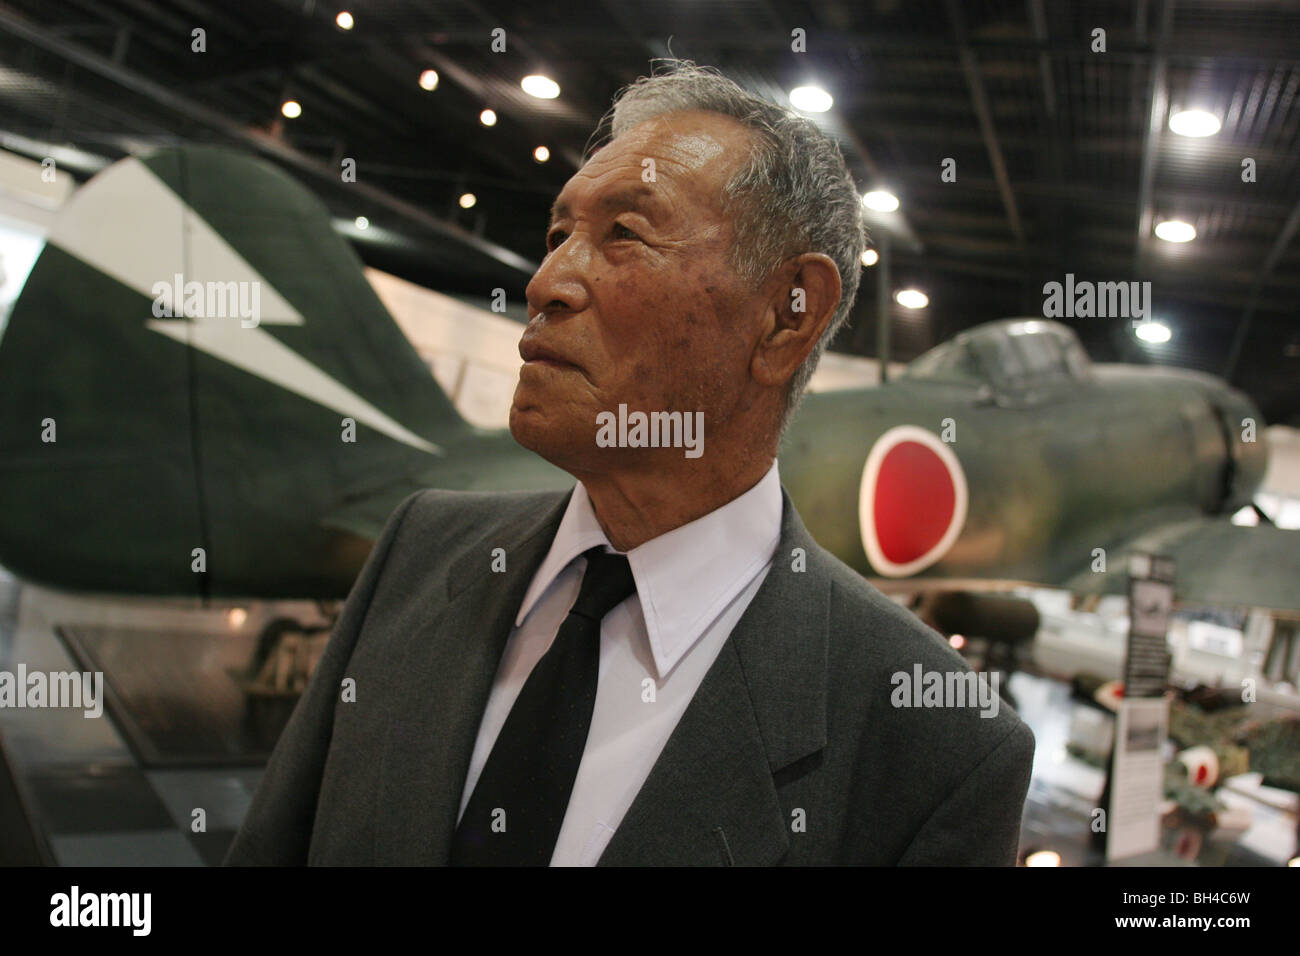 Shigeyoshi Hamazono, 81 years old, 'kamikaze' pilot in the Japanese Special Attack Force during WW2, in - Stock Image